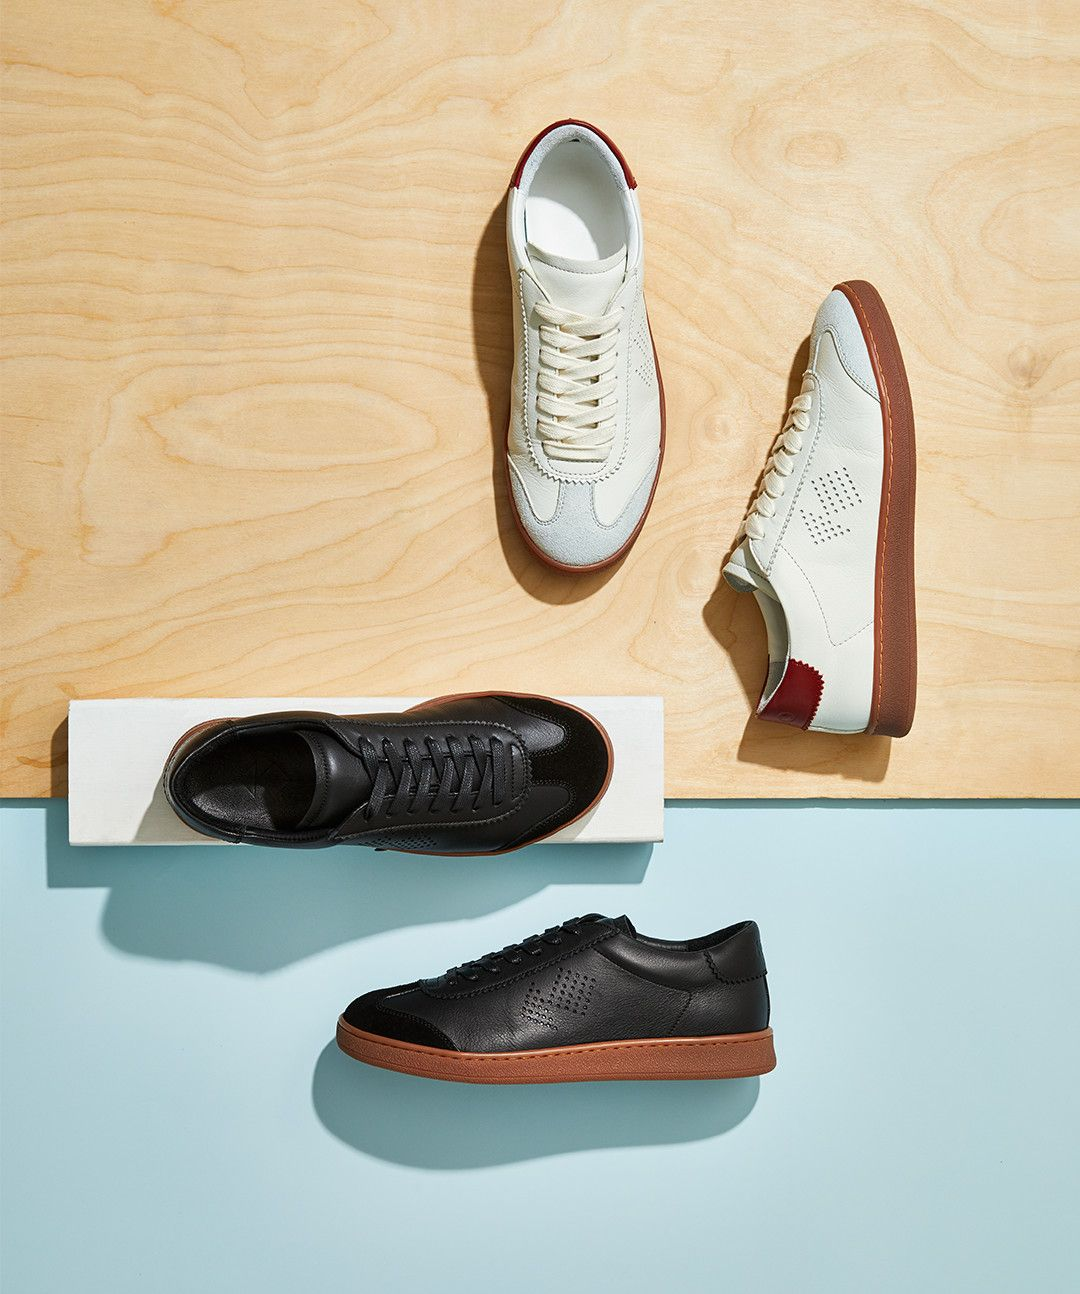 The Clean (but Not Too Clean) Sneakers That'll Transition Perfectly Into Fall